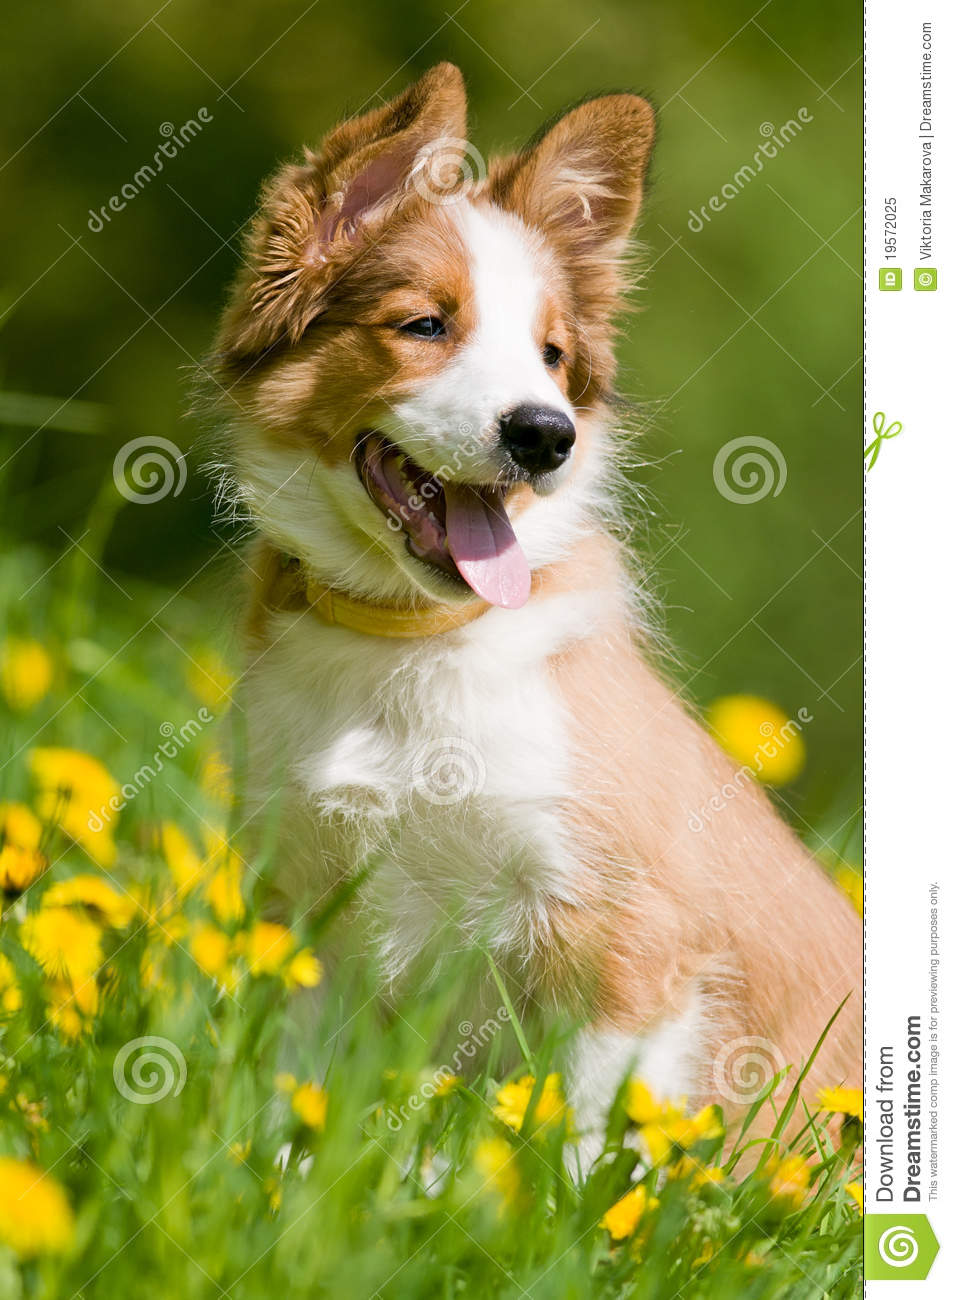 Border Collie Puppy In Flowers Royalty Free Stock Photo ... Cute Puppies